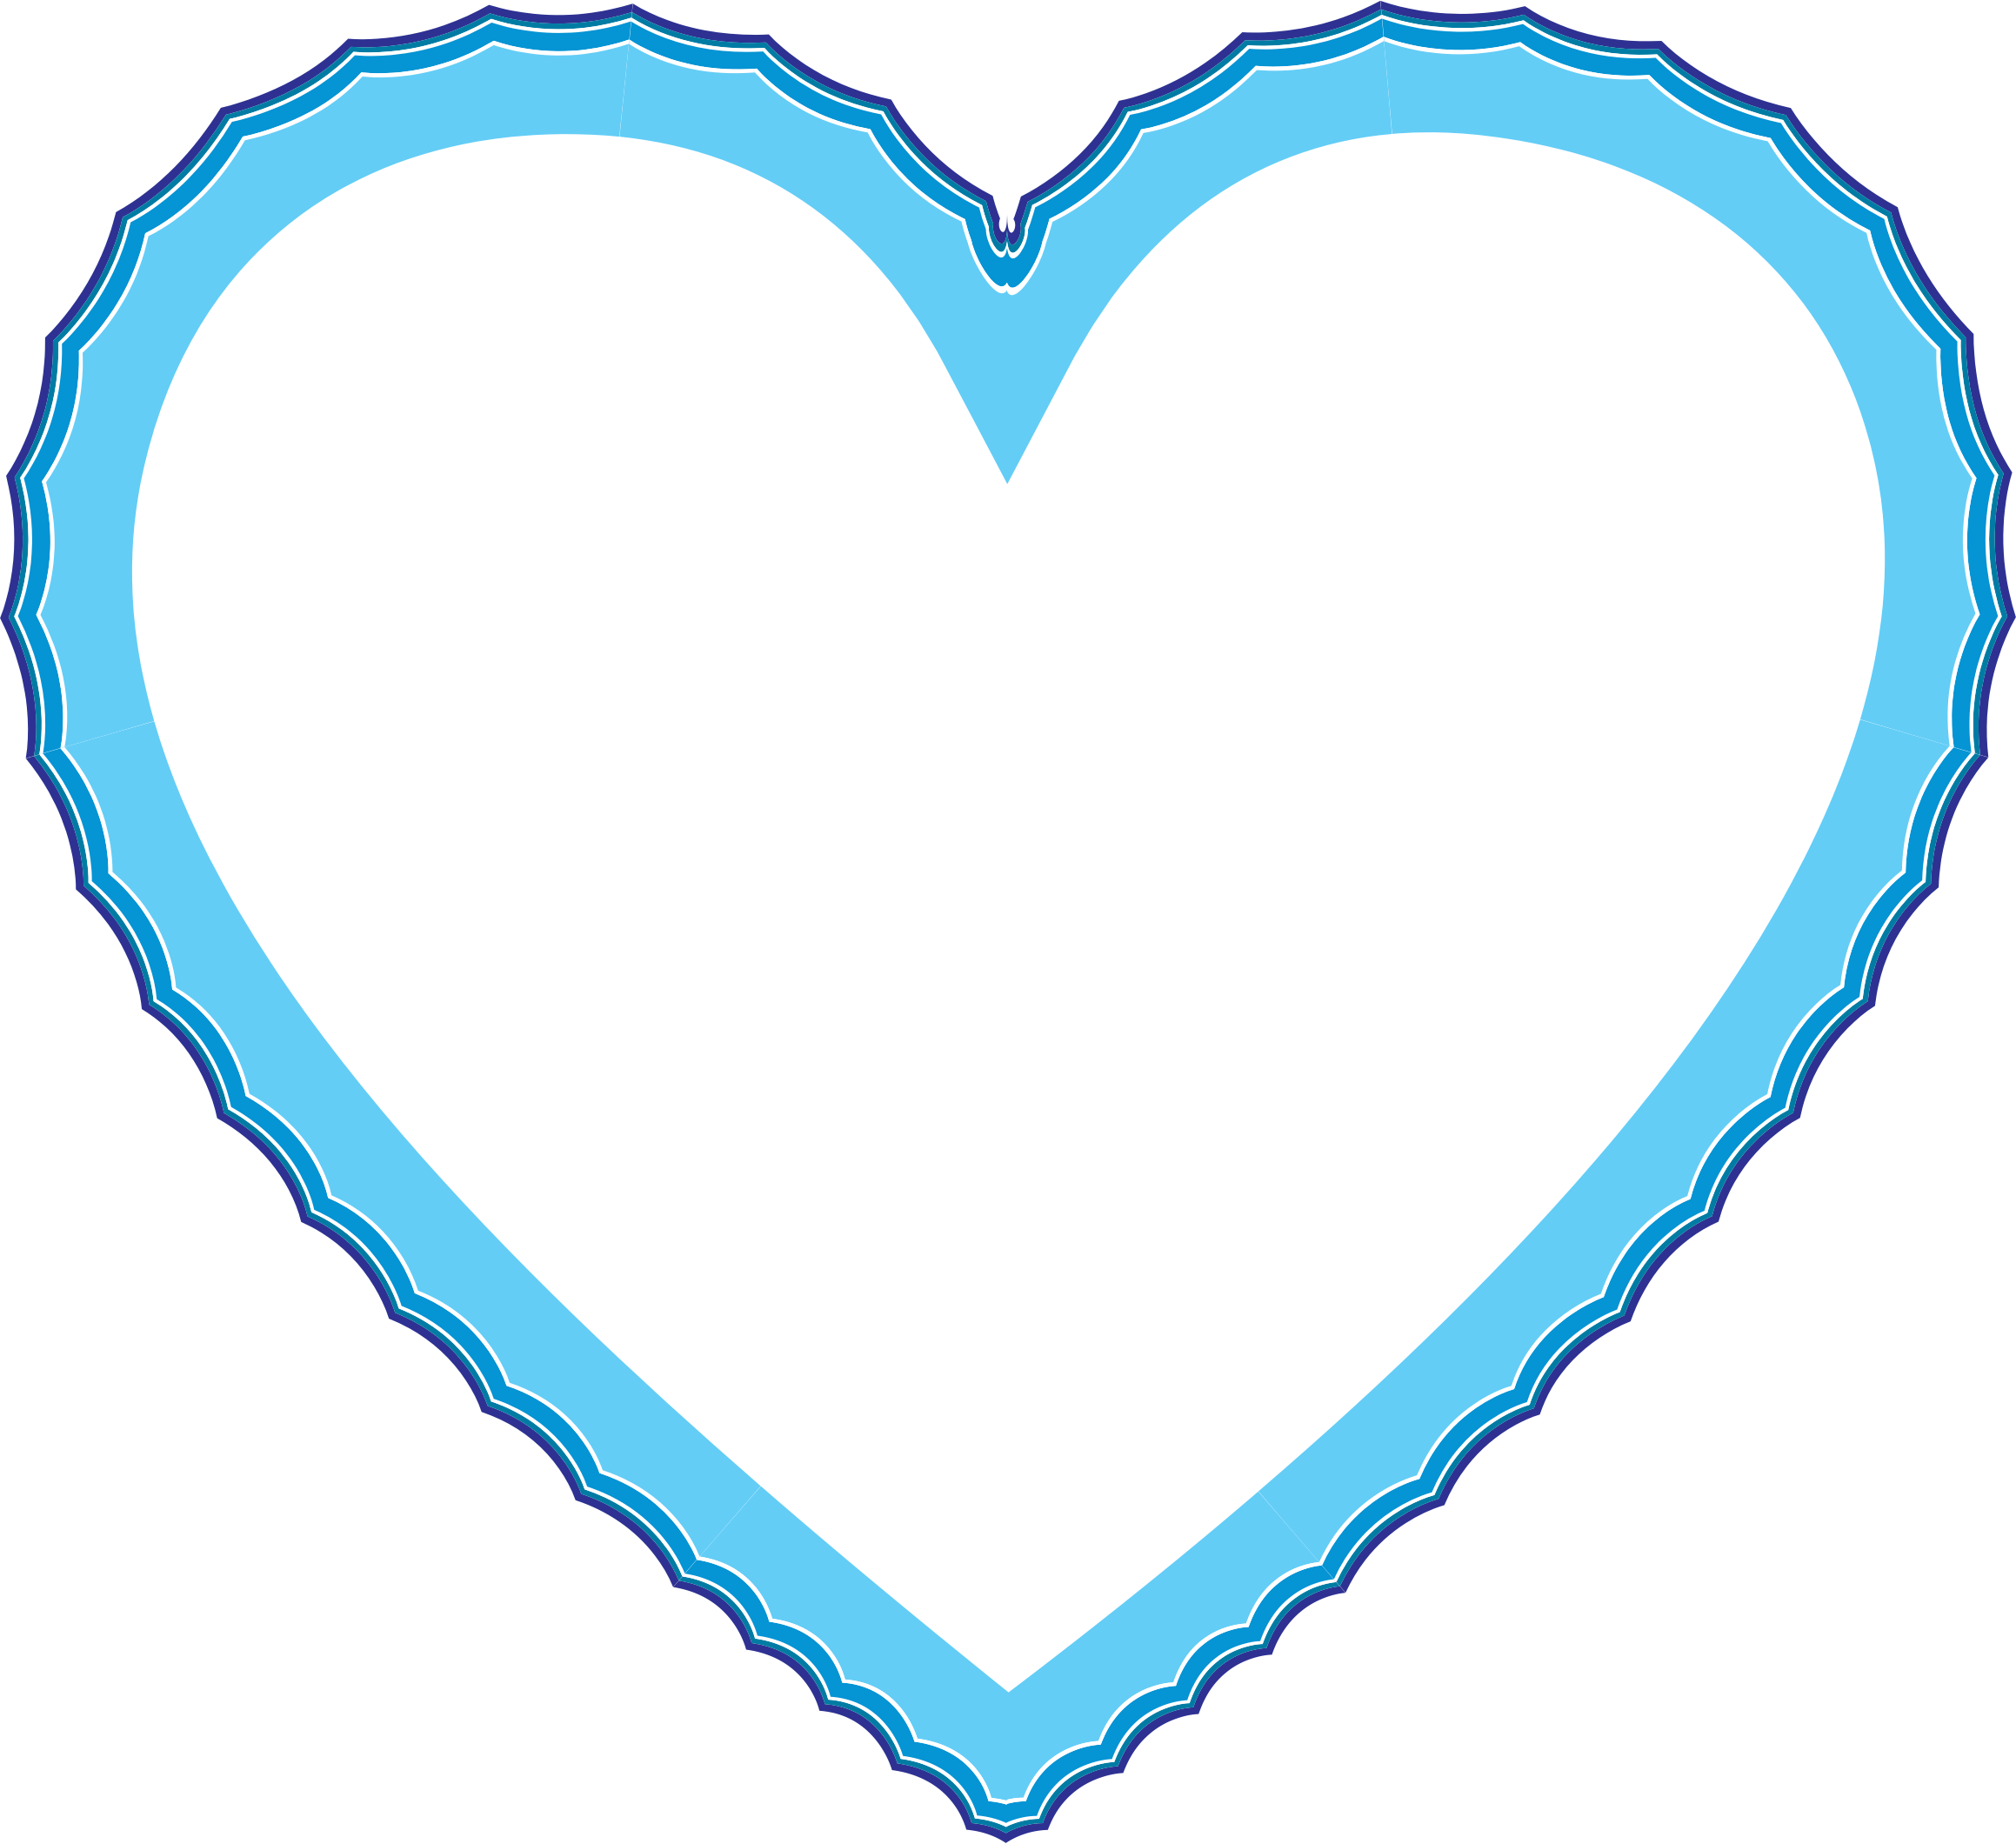 Waves frame big image. Heart clipart water